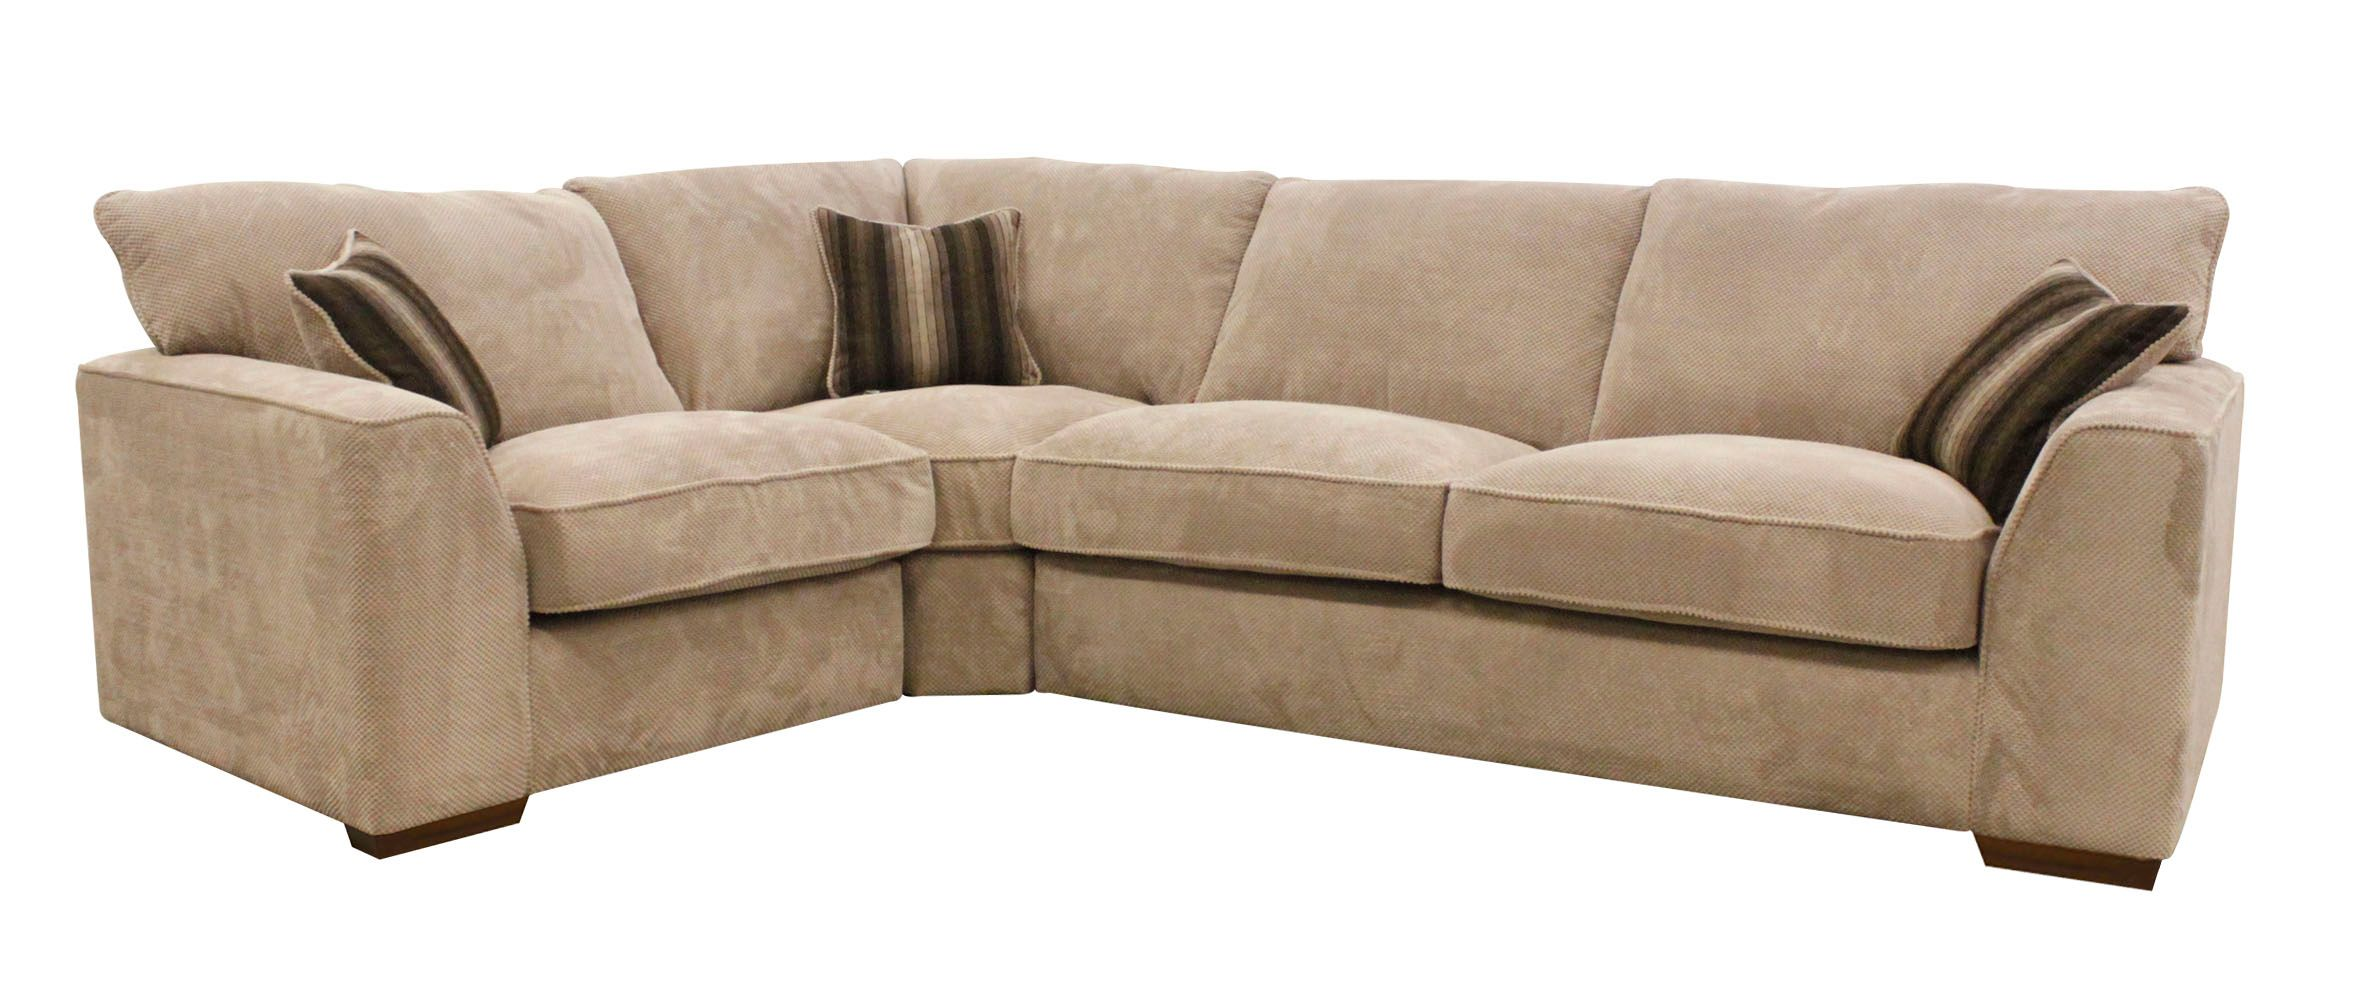 Montana left hand facing corner sofa beige